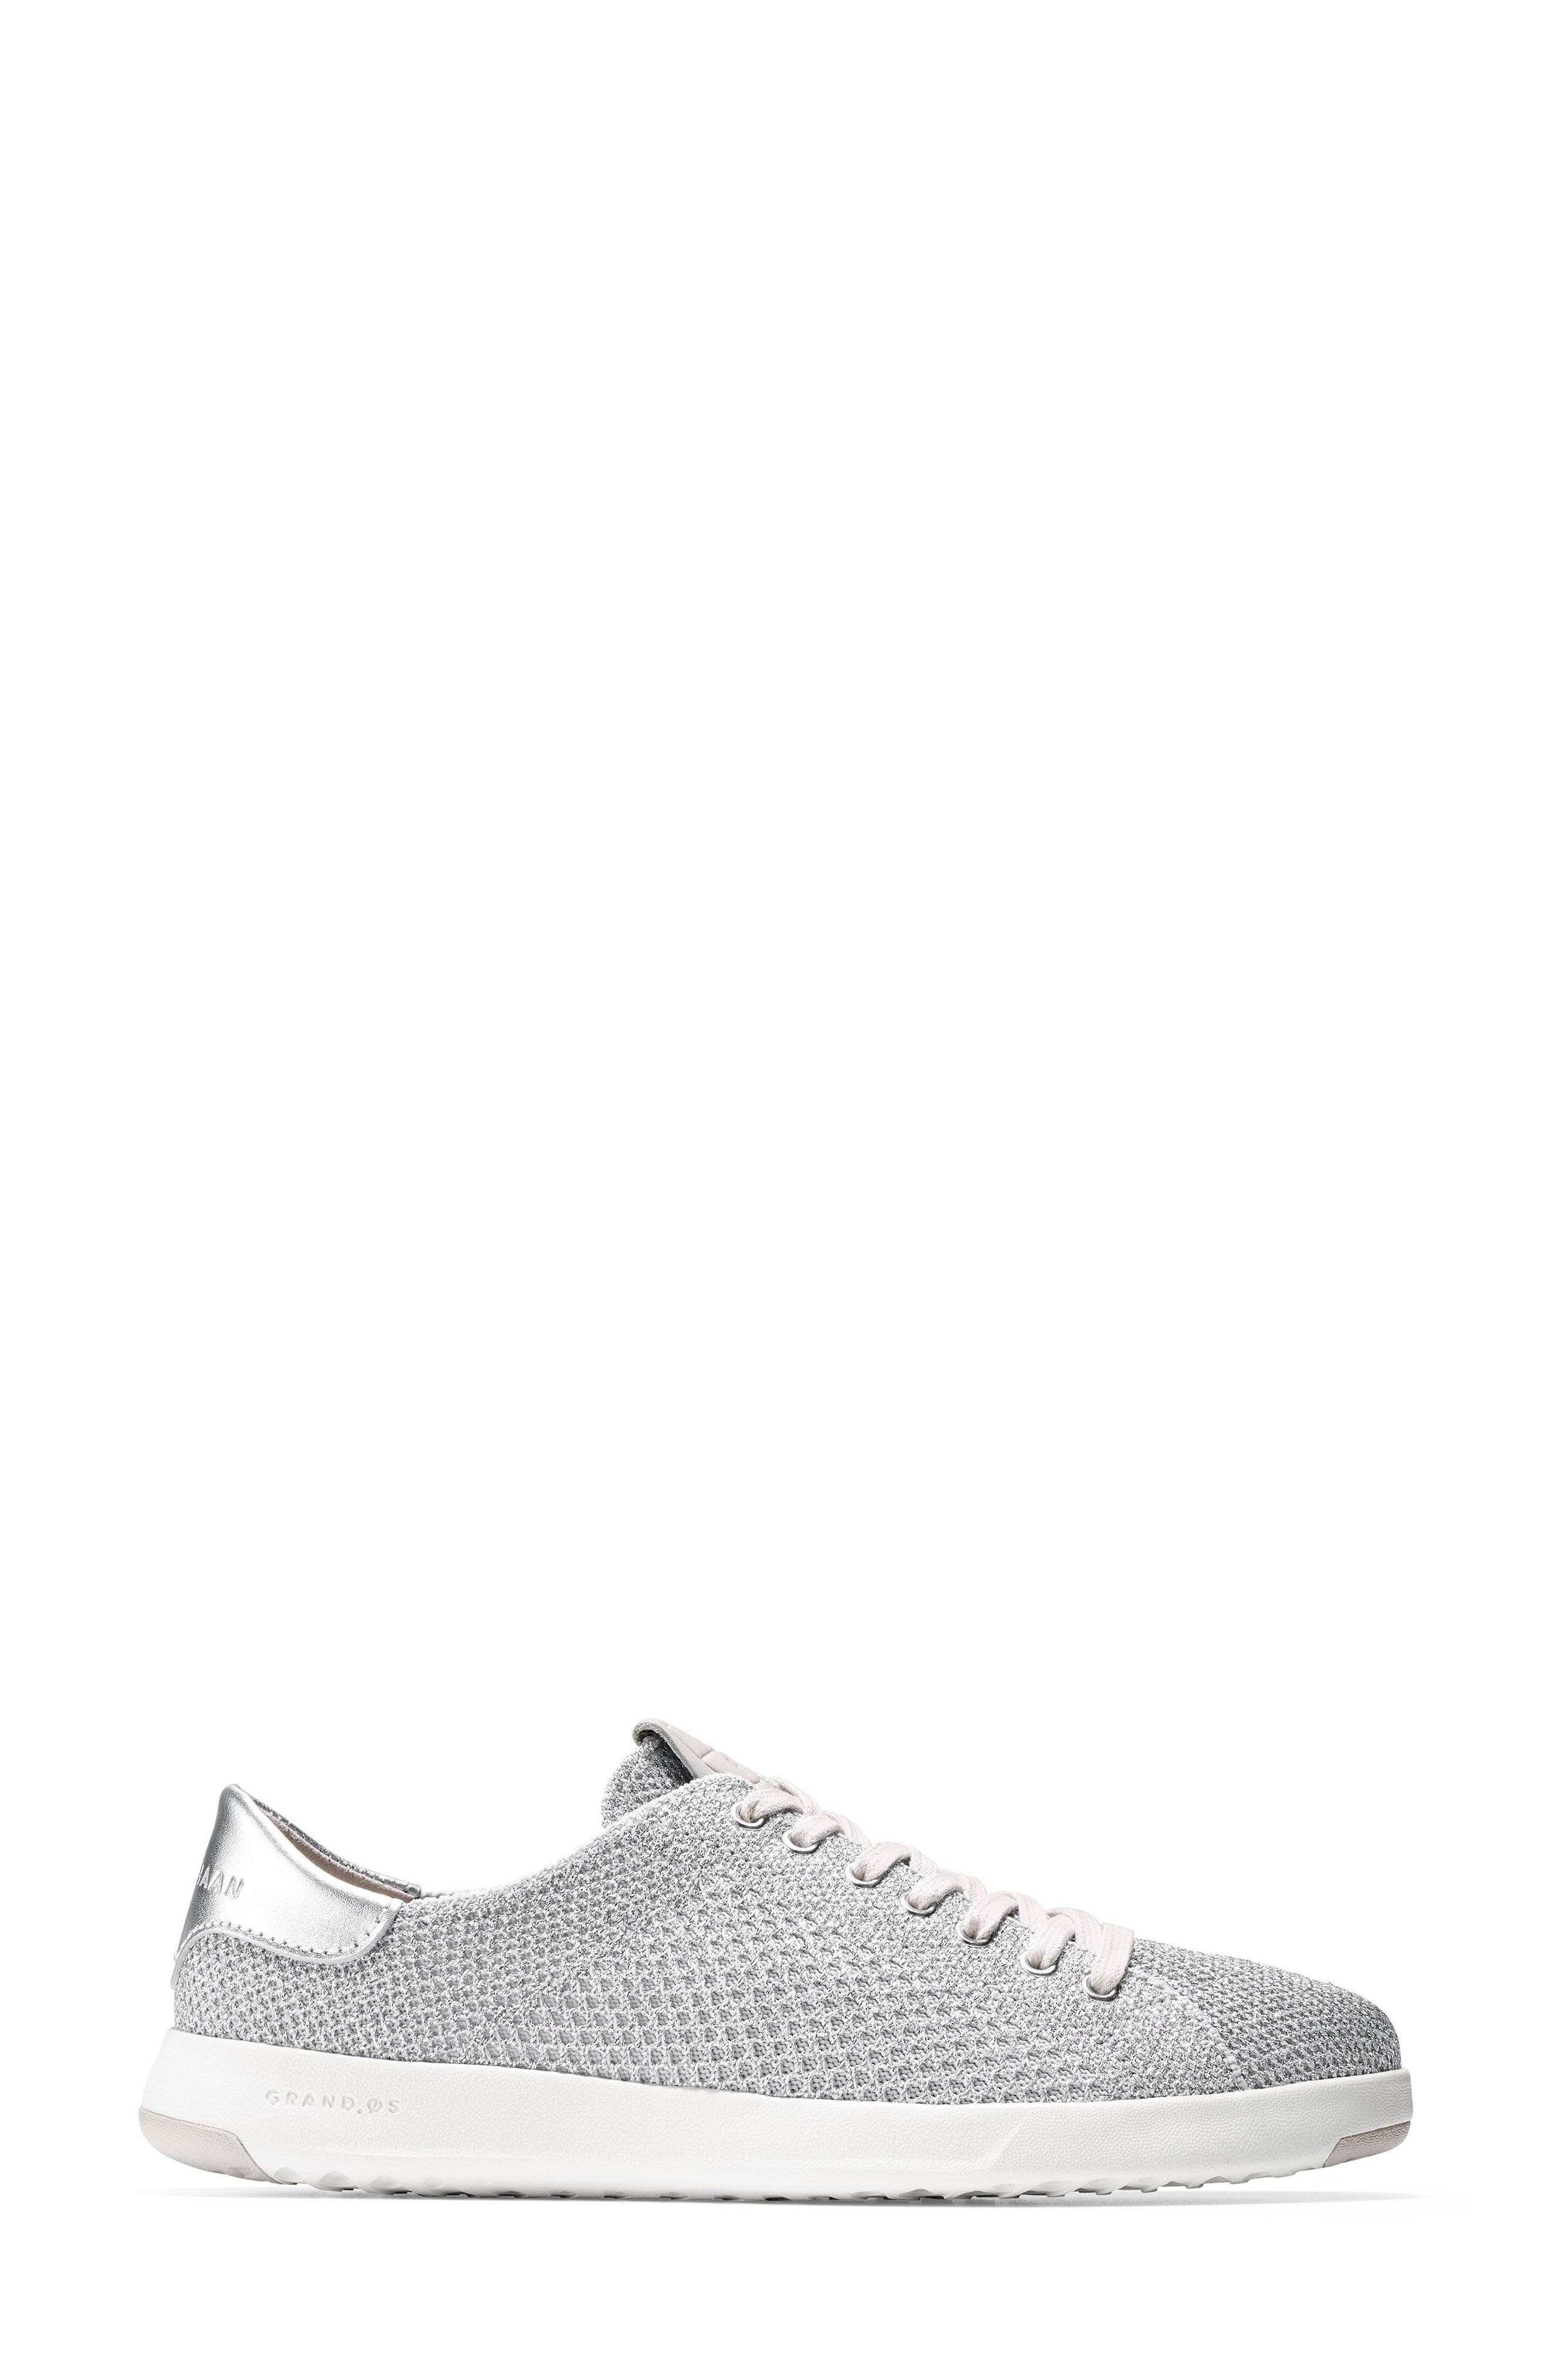 GrandPro Stitchlite Sneaker,                             Alternate thumbnail 3, color,                             Silver Fabric